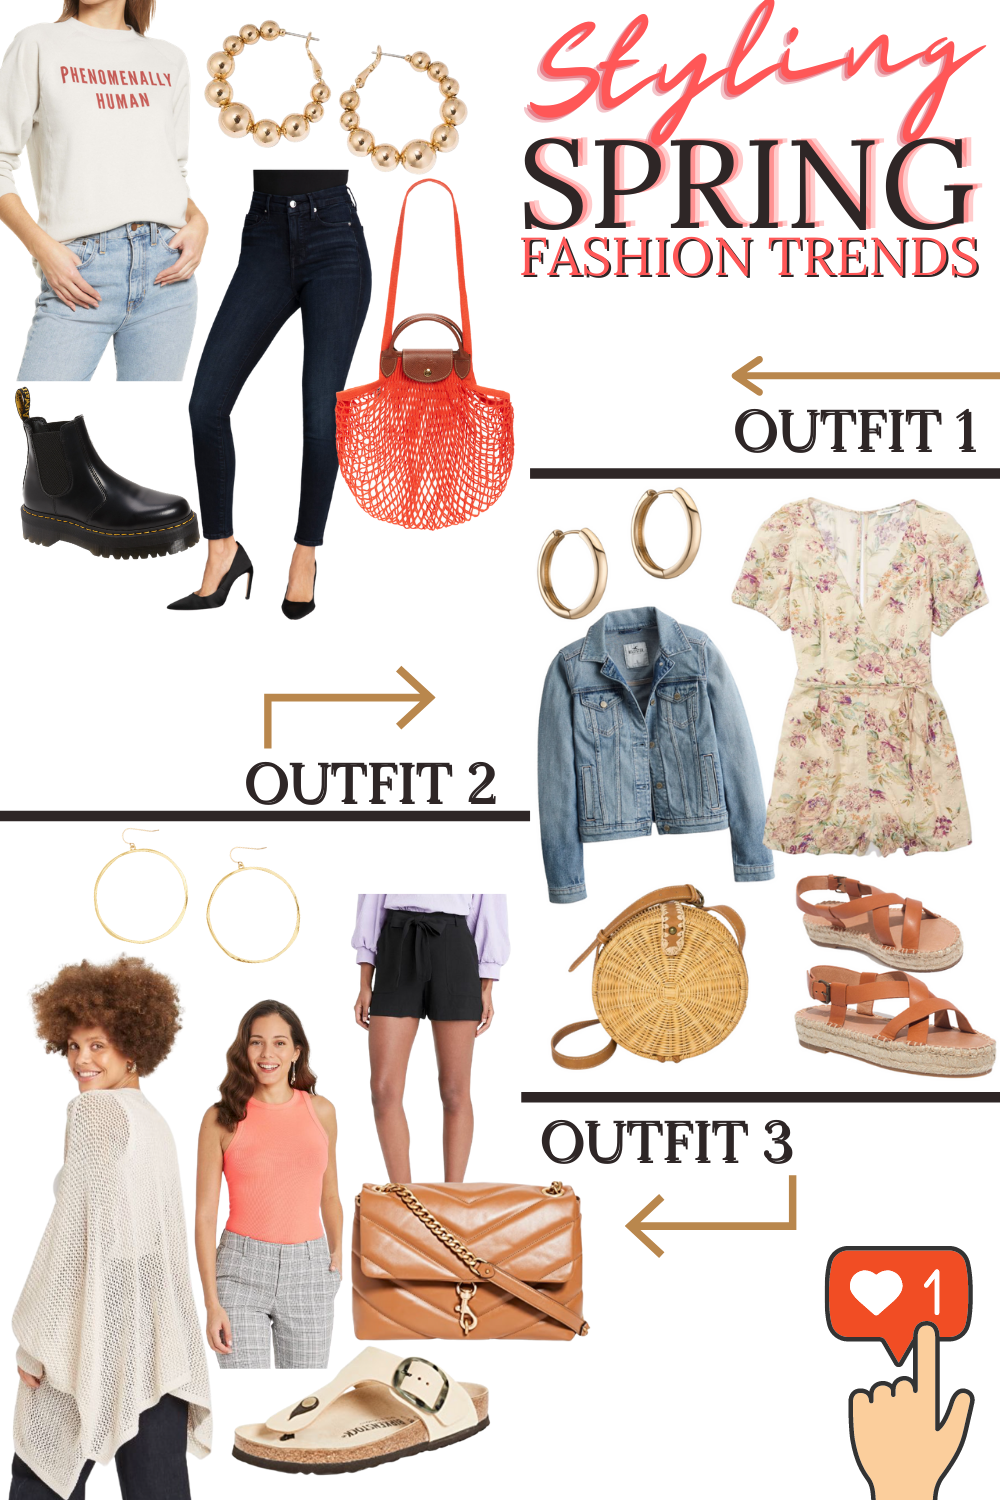 Styling Spring Fashion Trends